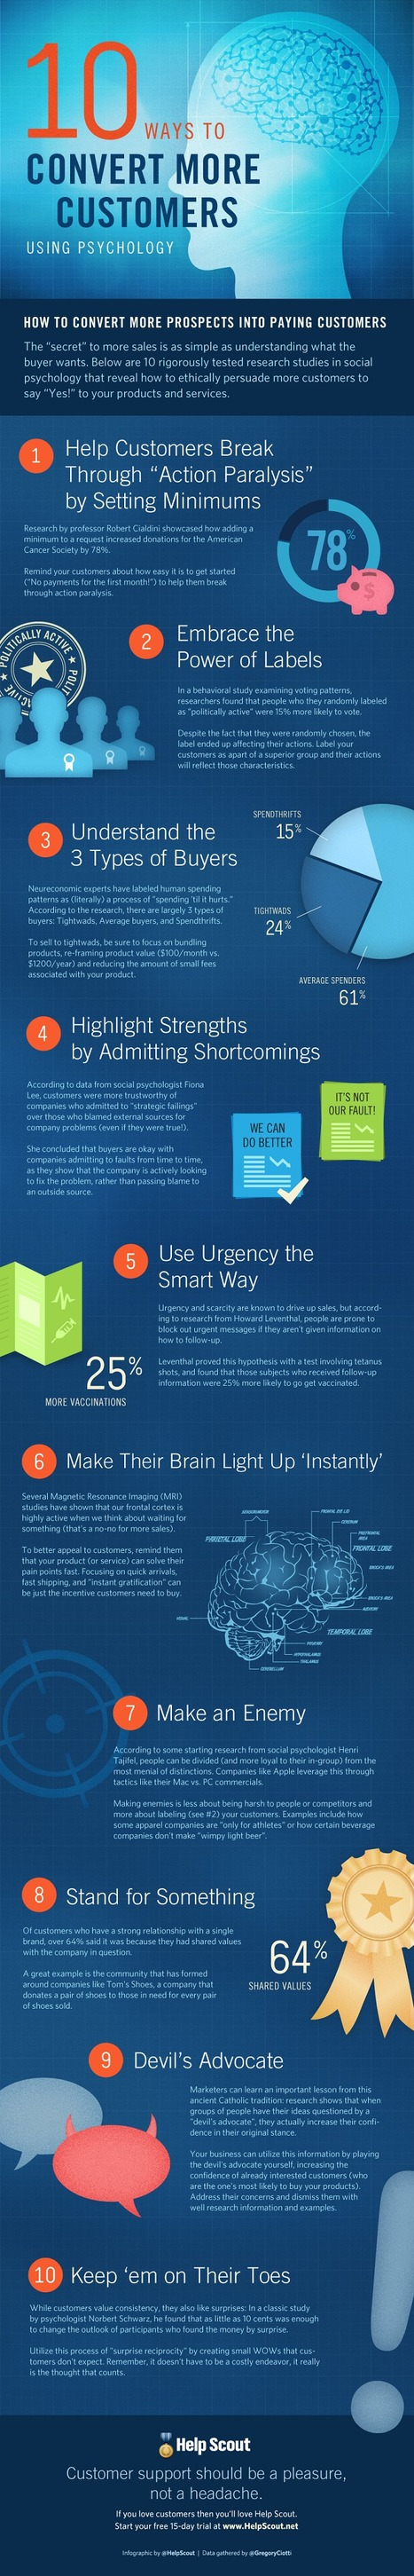 10 Ways to Convert More Customers With Psychology [INFOGRAPHIC] | Digital Marketing for Business | Scoop.it